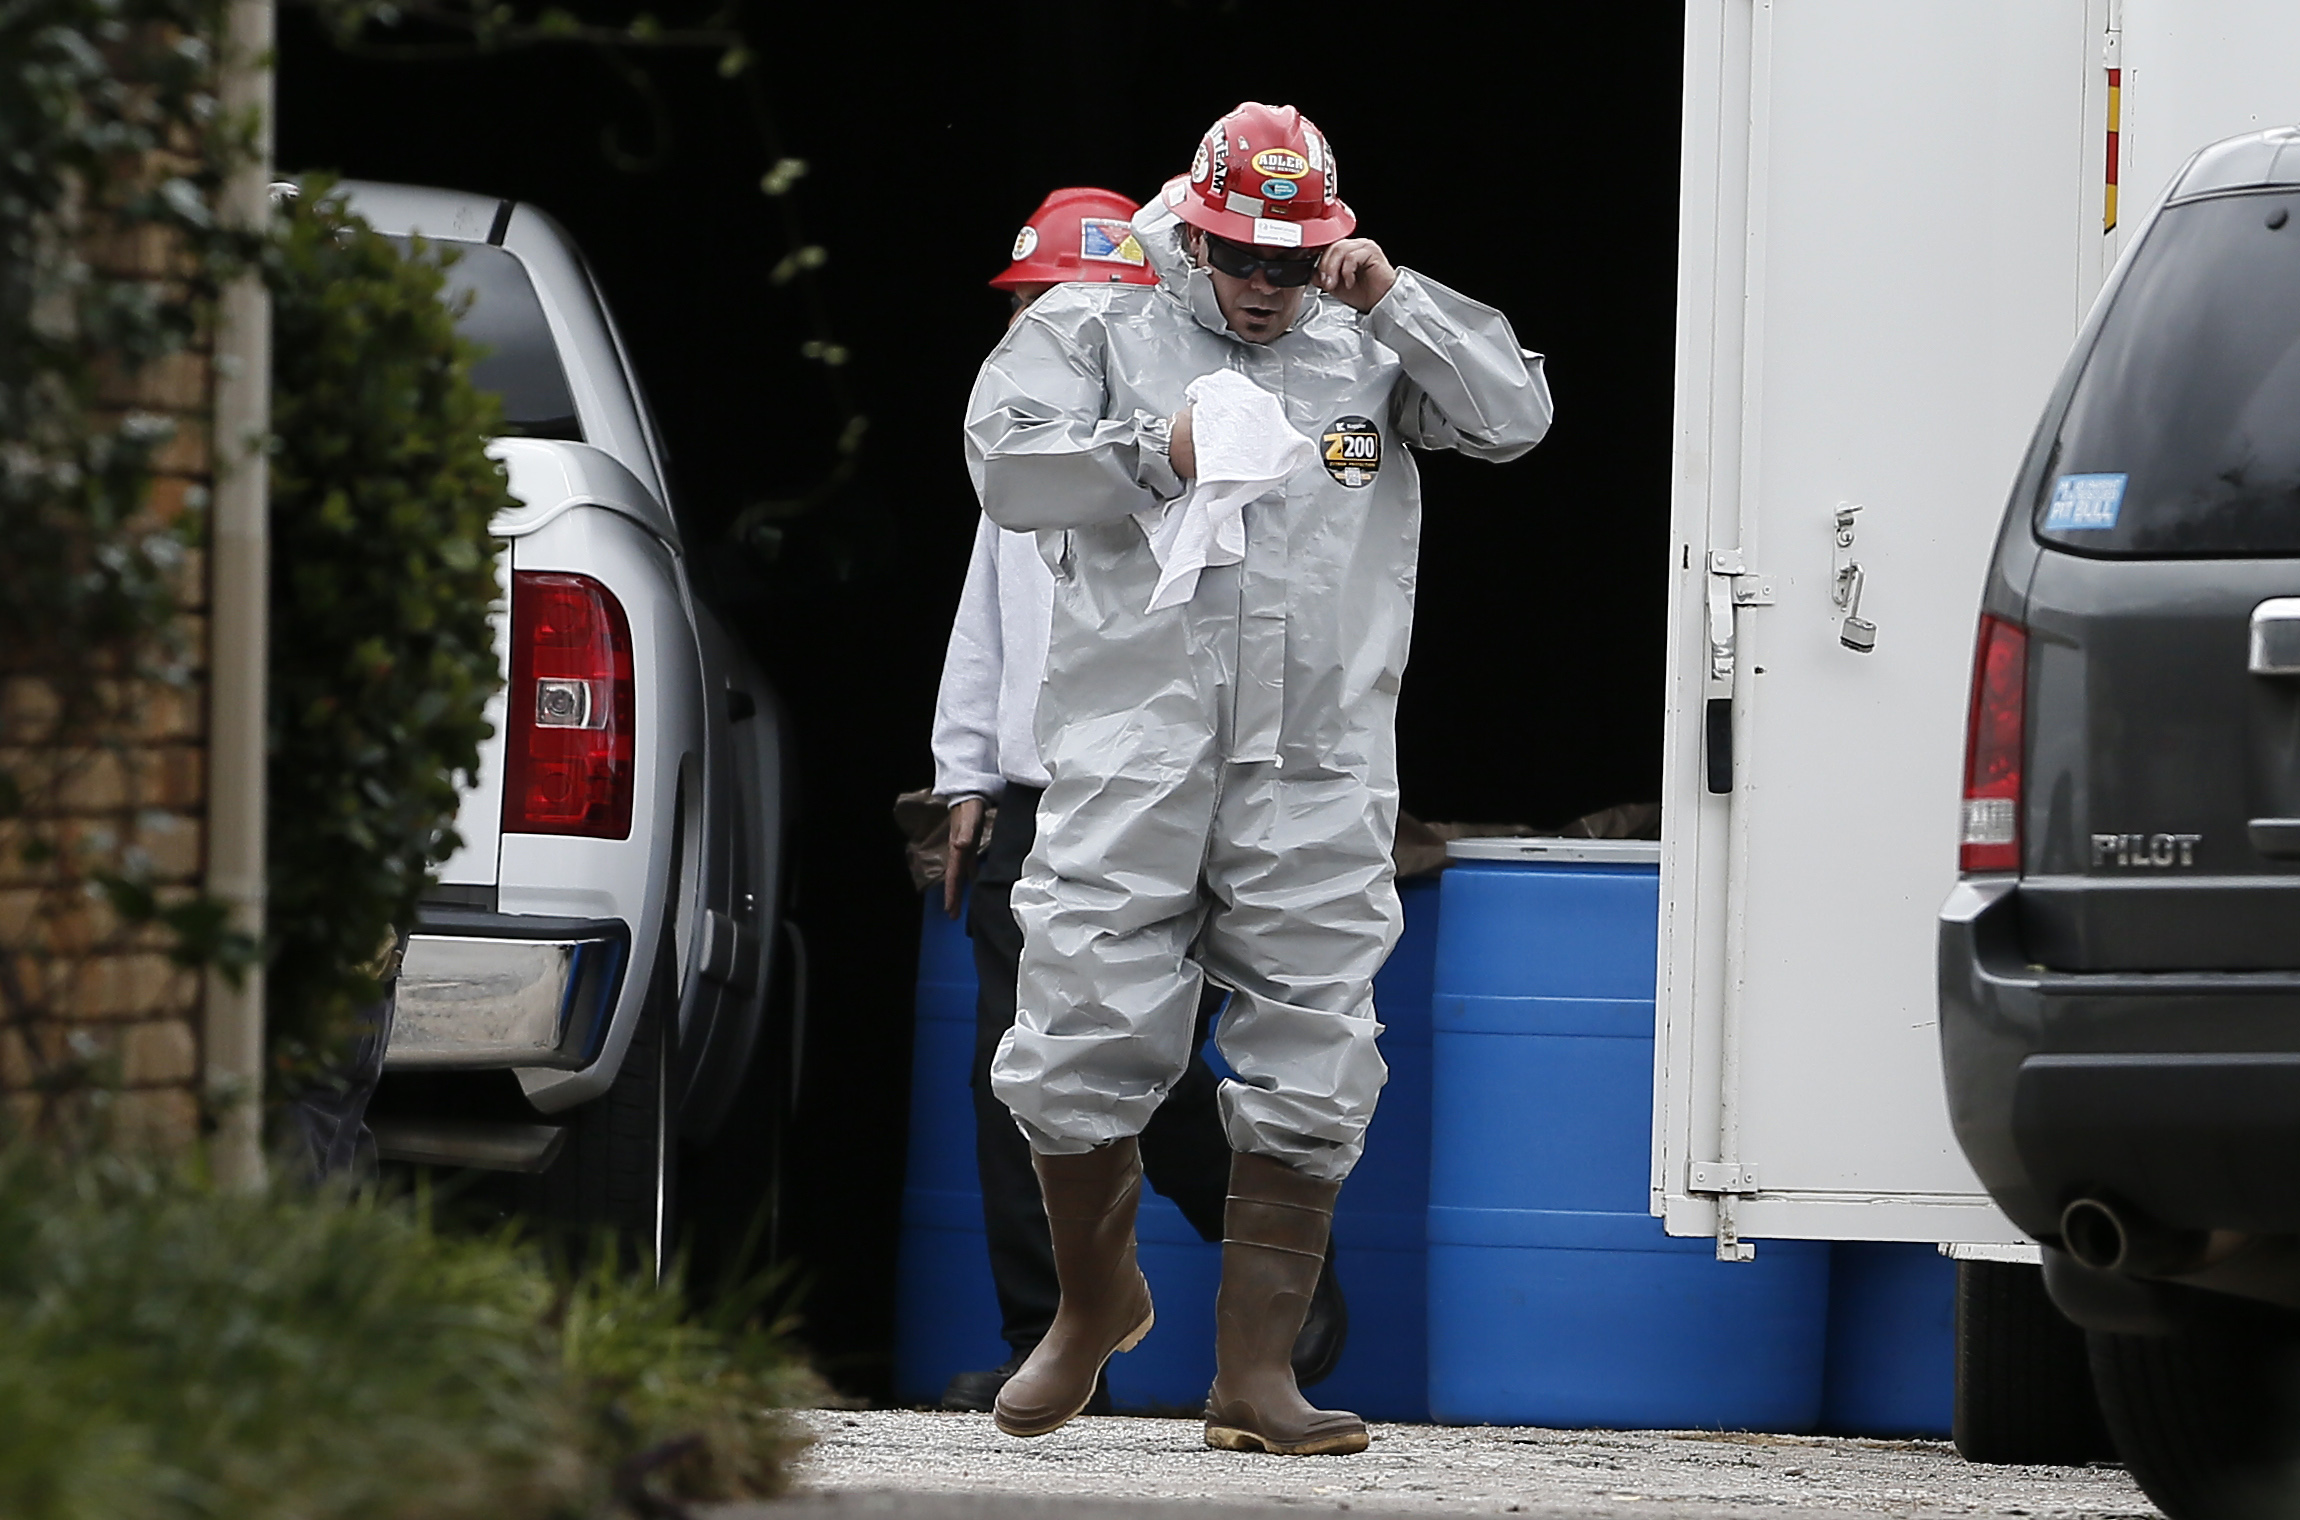 Environmental specialists disinfect the apartment of a health care worker who tested positive for Ebola in Dallas, Texas, Oct. 13, 2014.